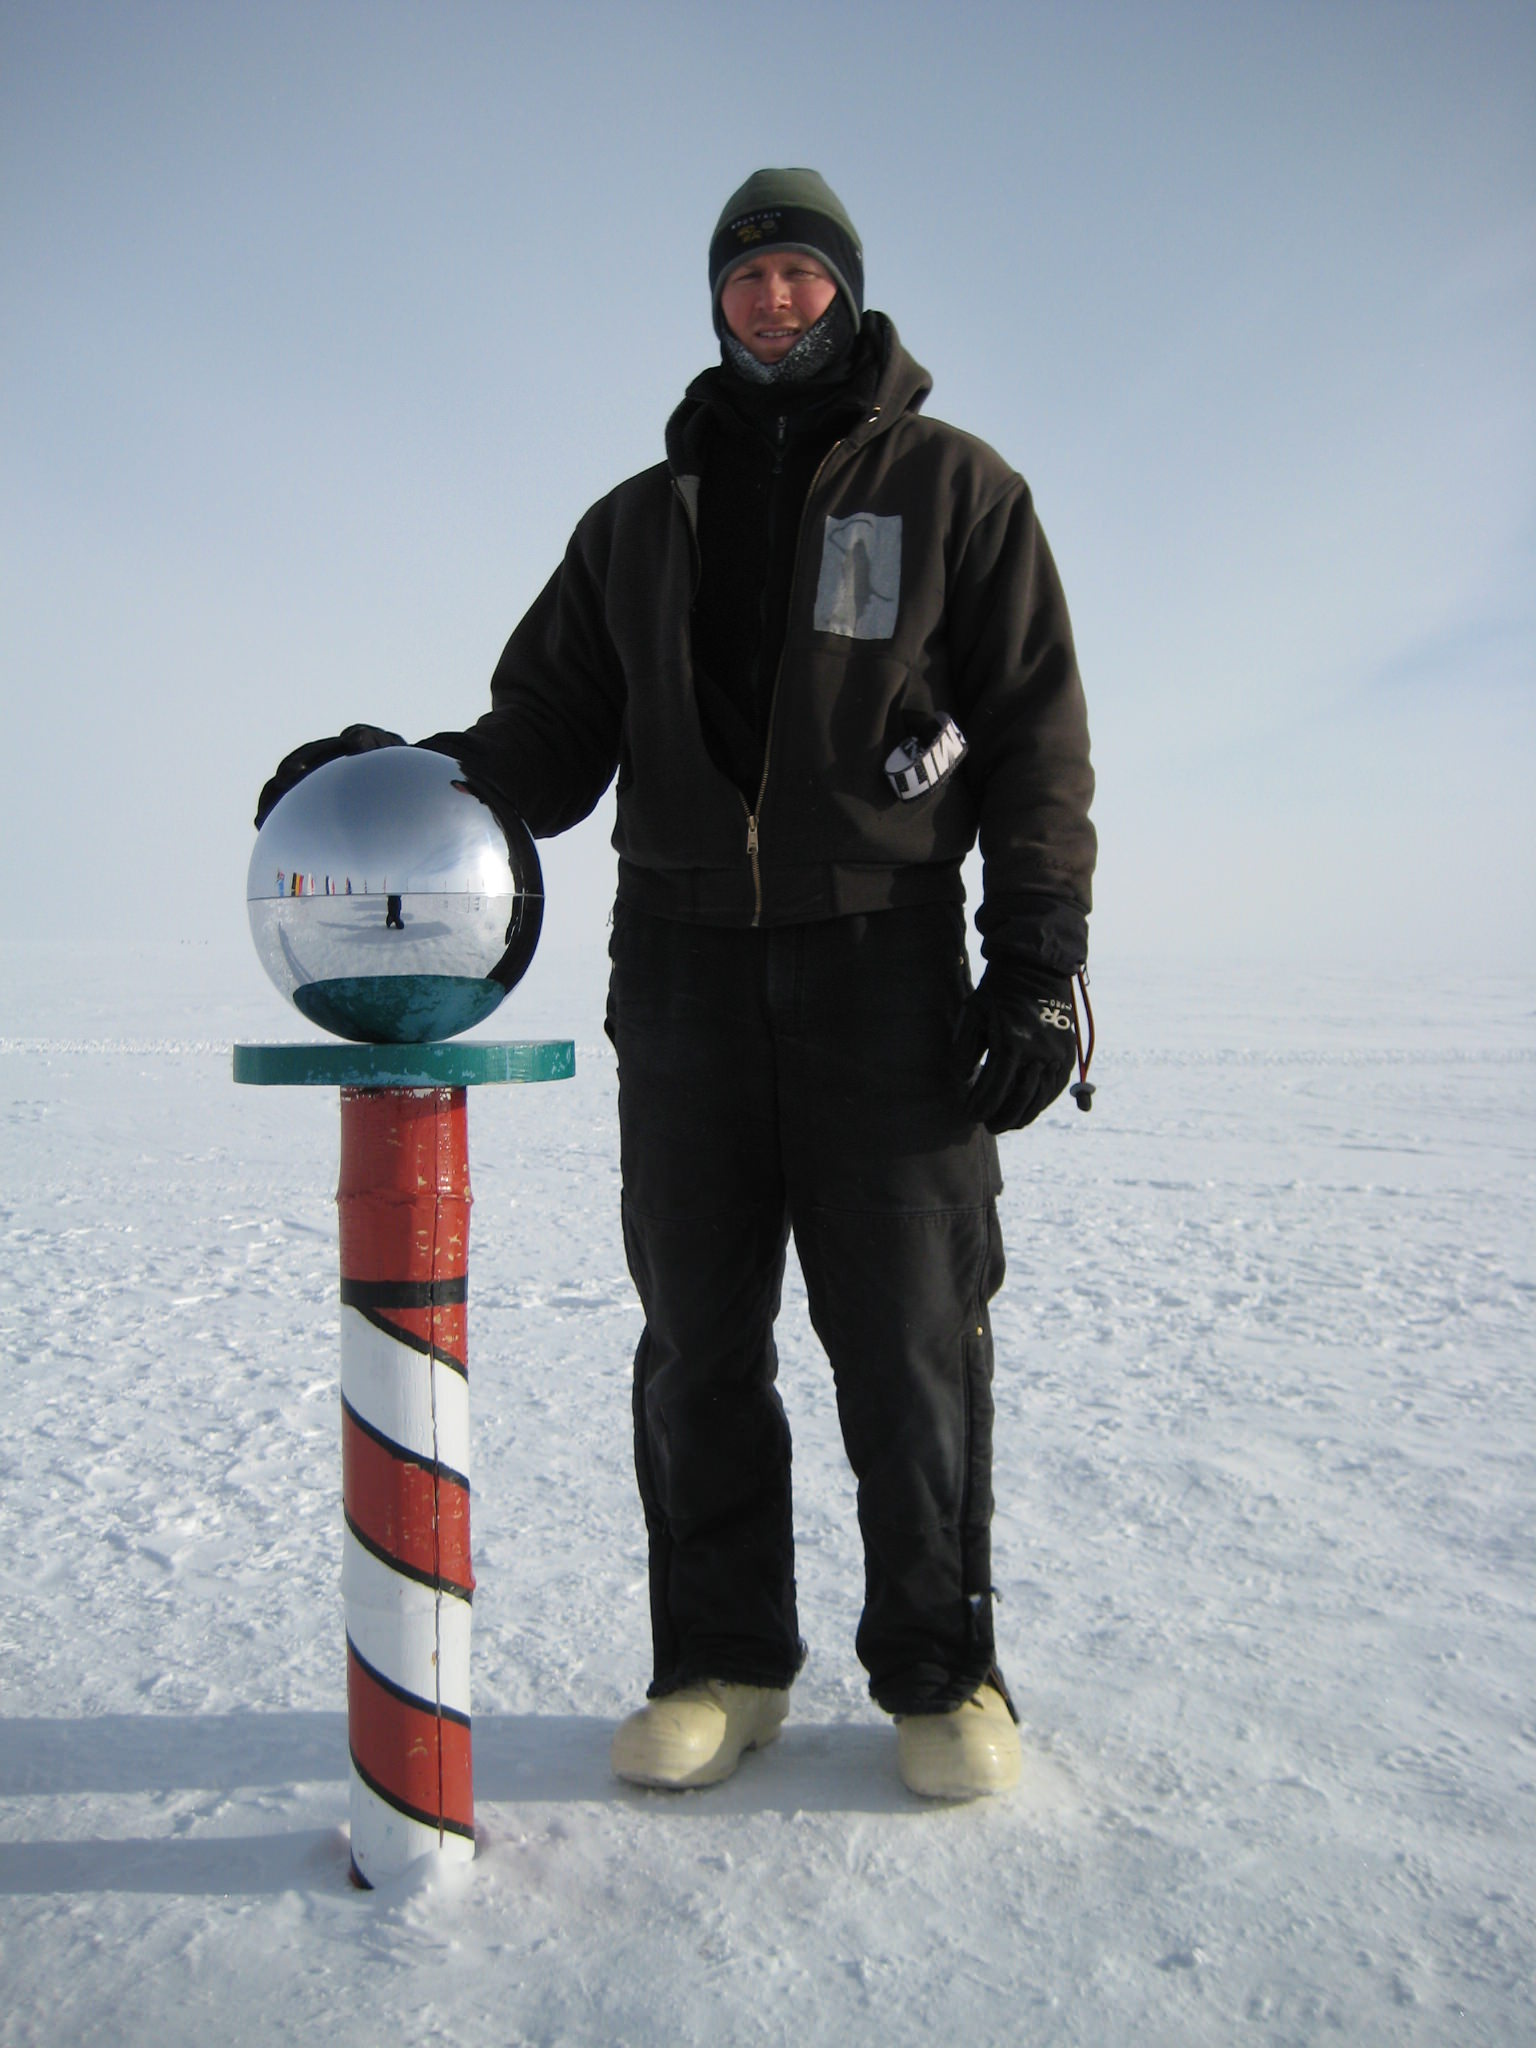 Nick at the South Pole